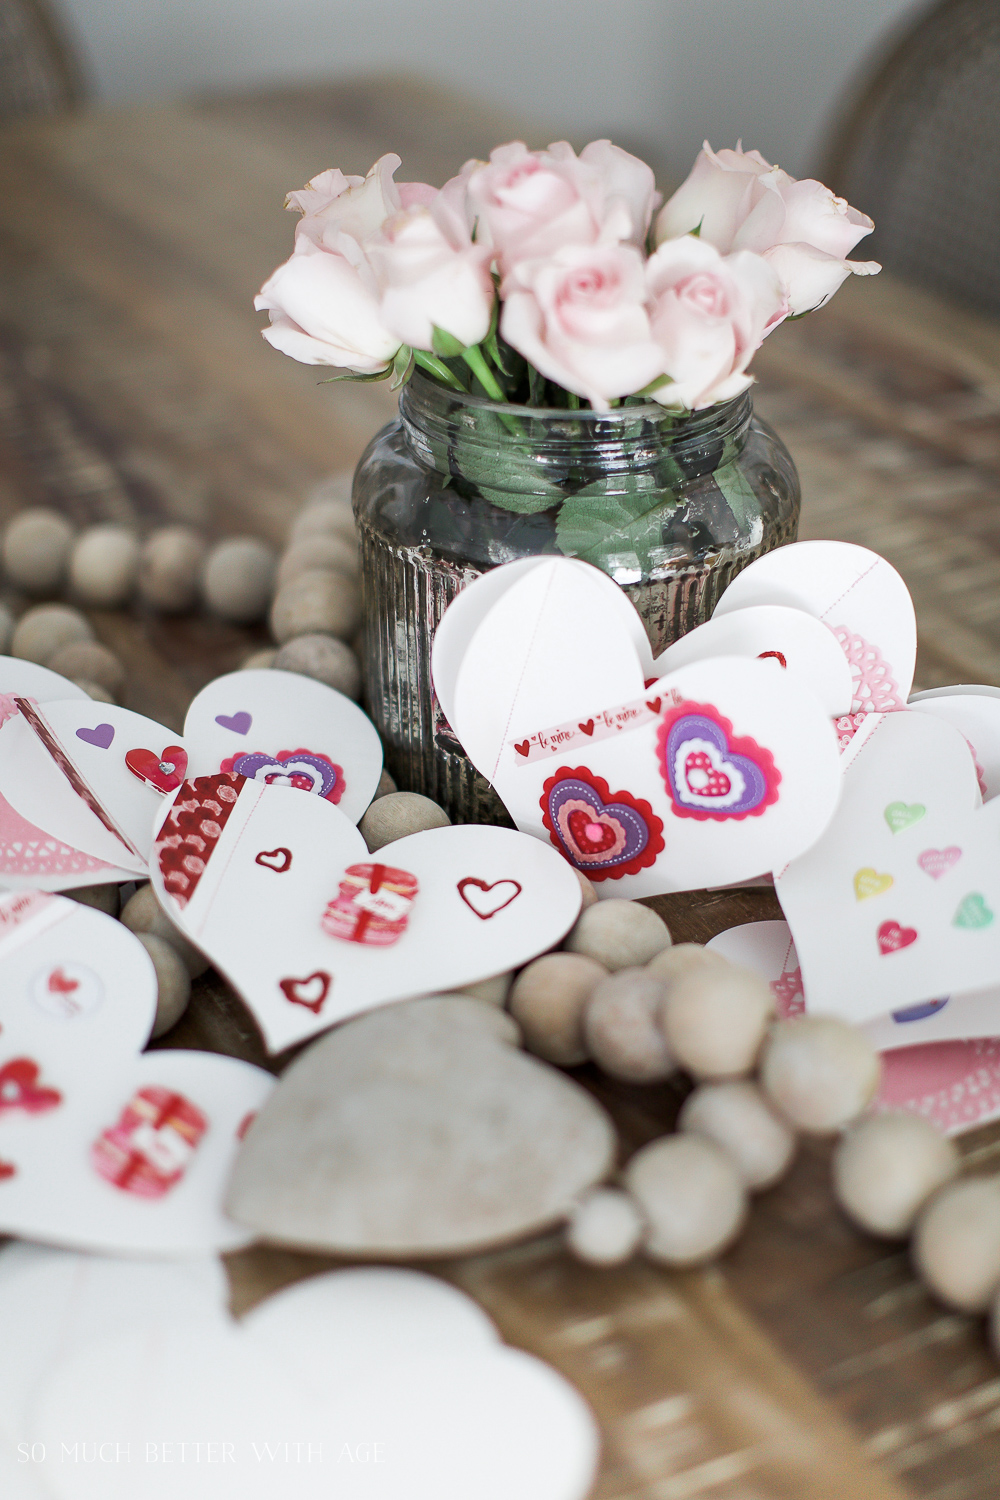 DIY stitched Valentine's Day cards / cards with flowers in vase - So Much Better With Age